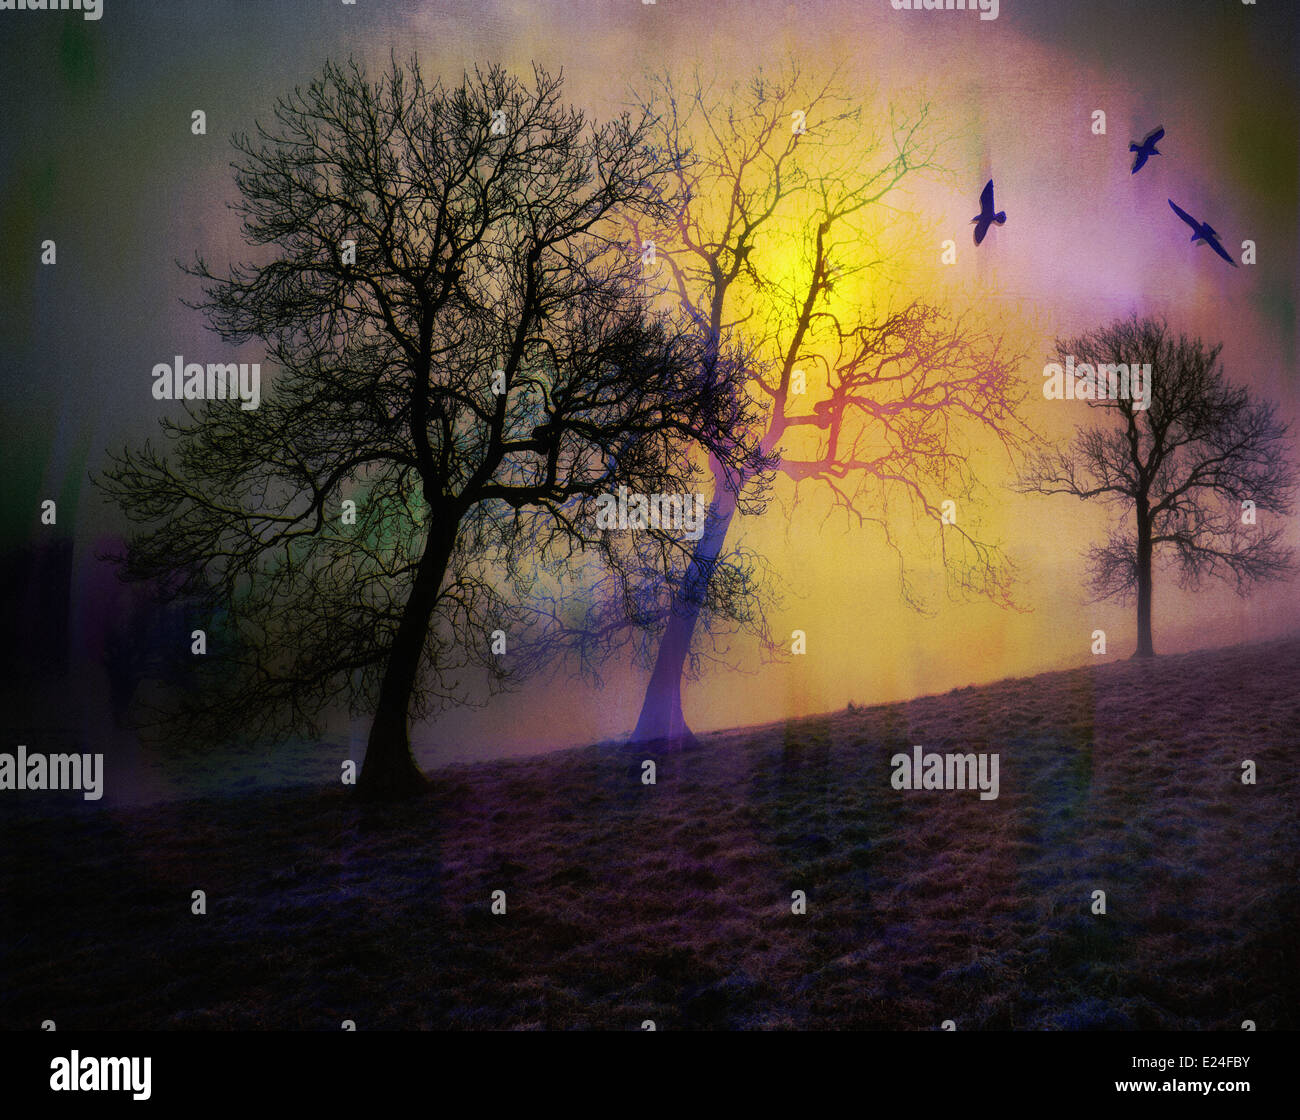 DIGITAL ART: The Birds - Stock Image